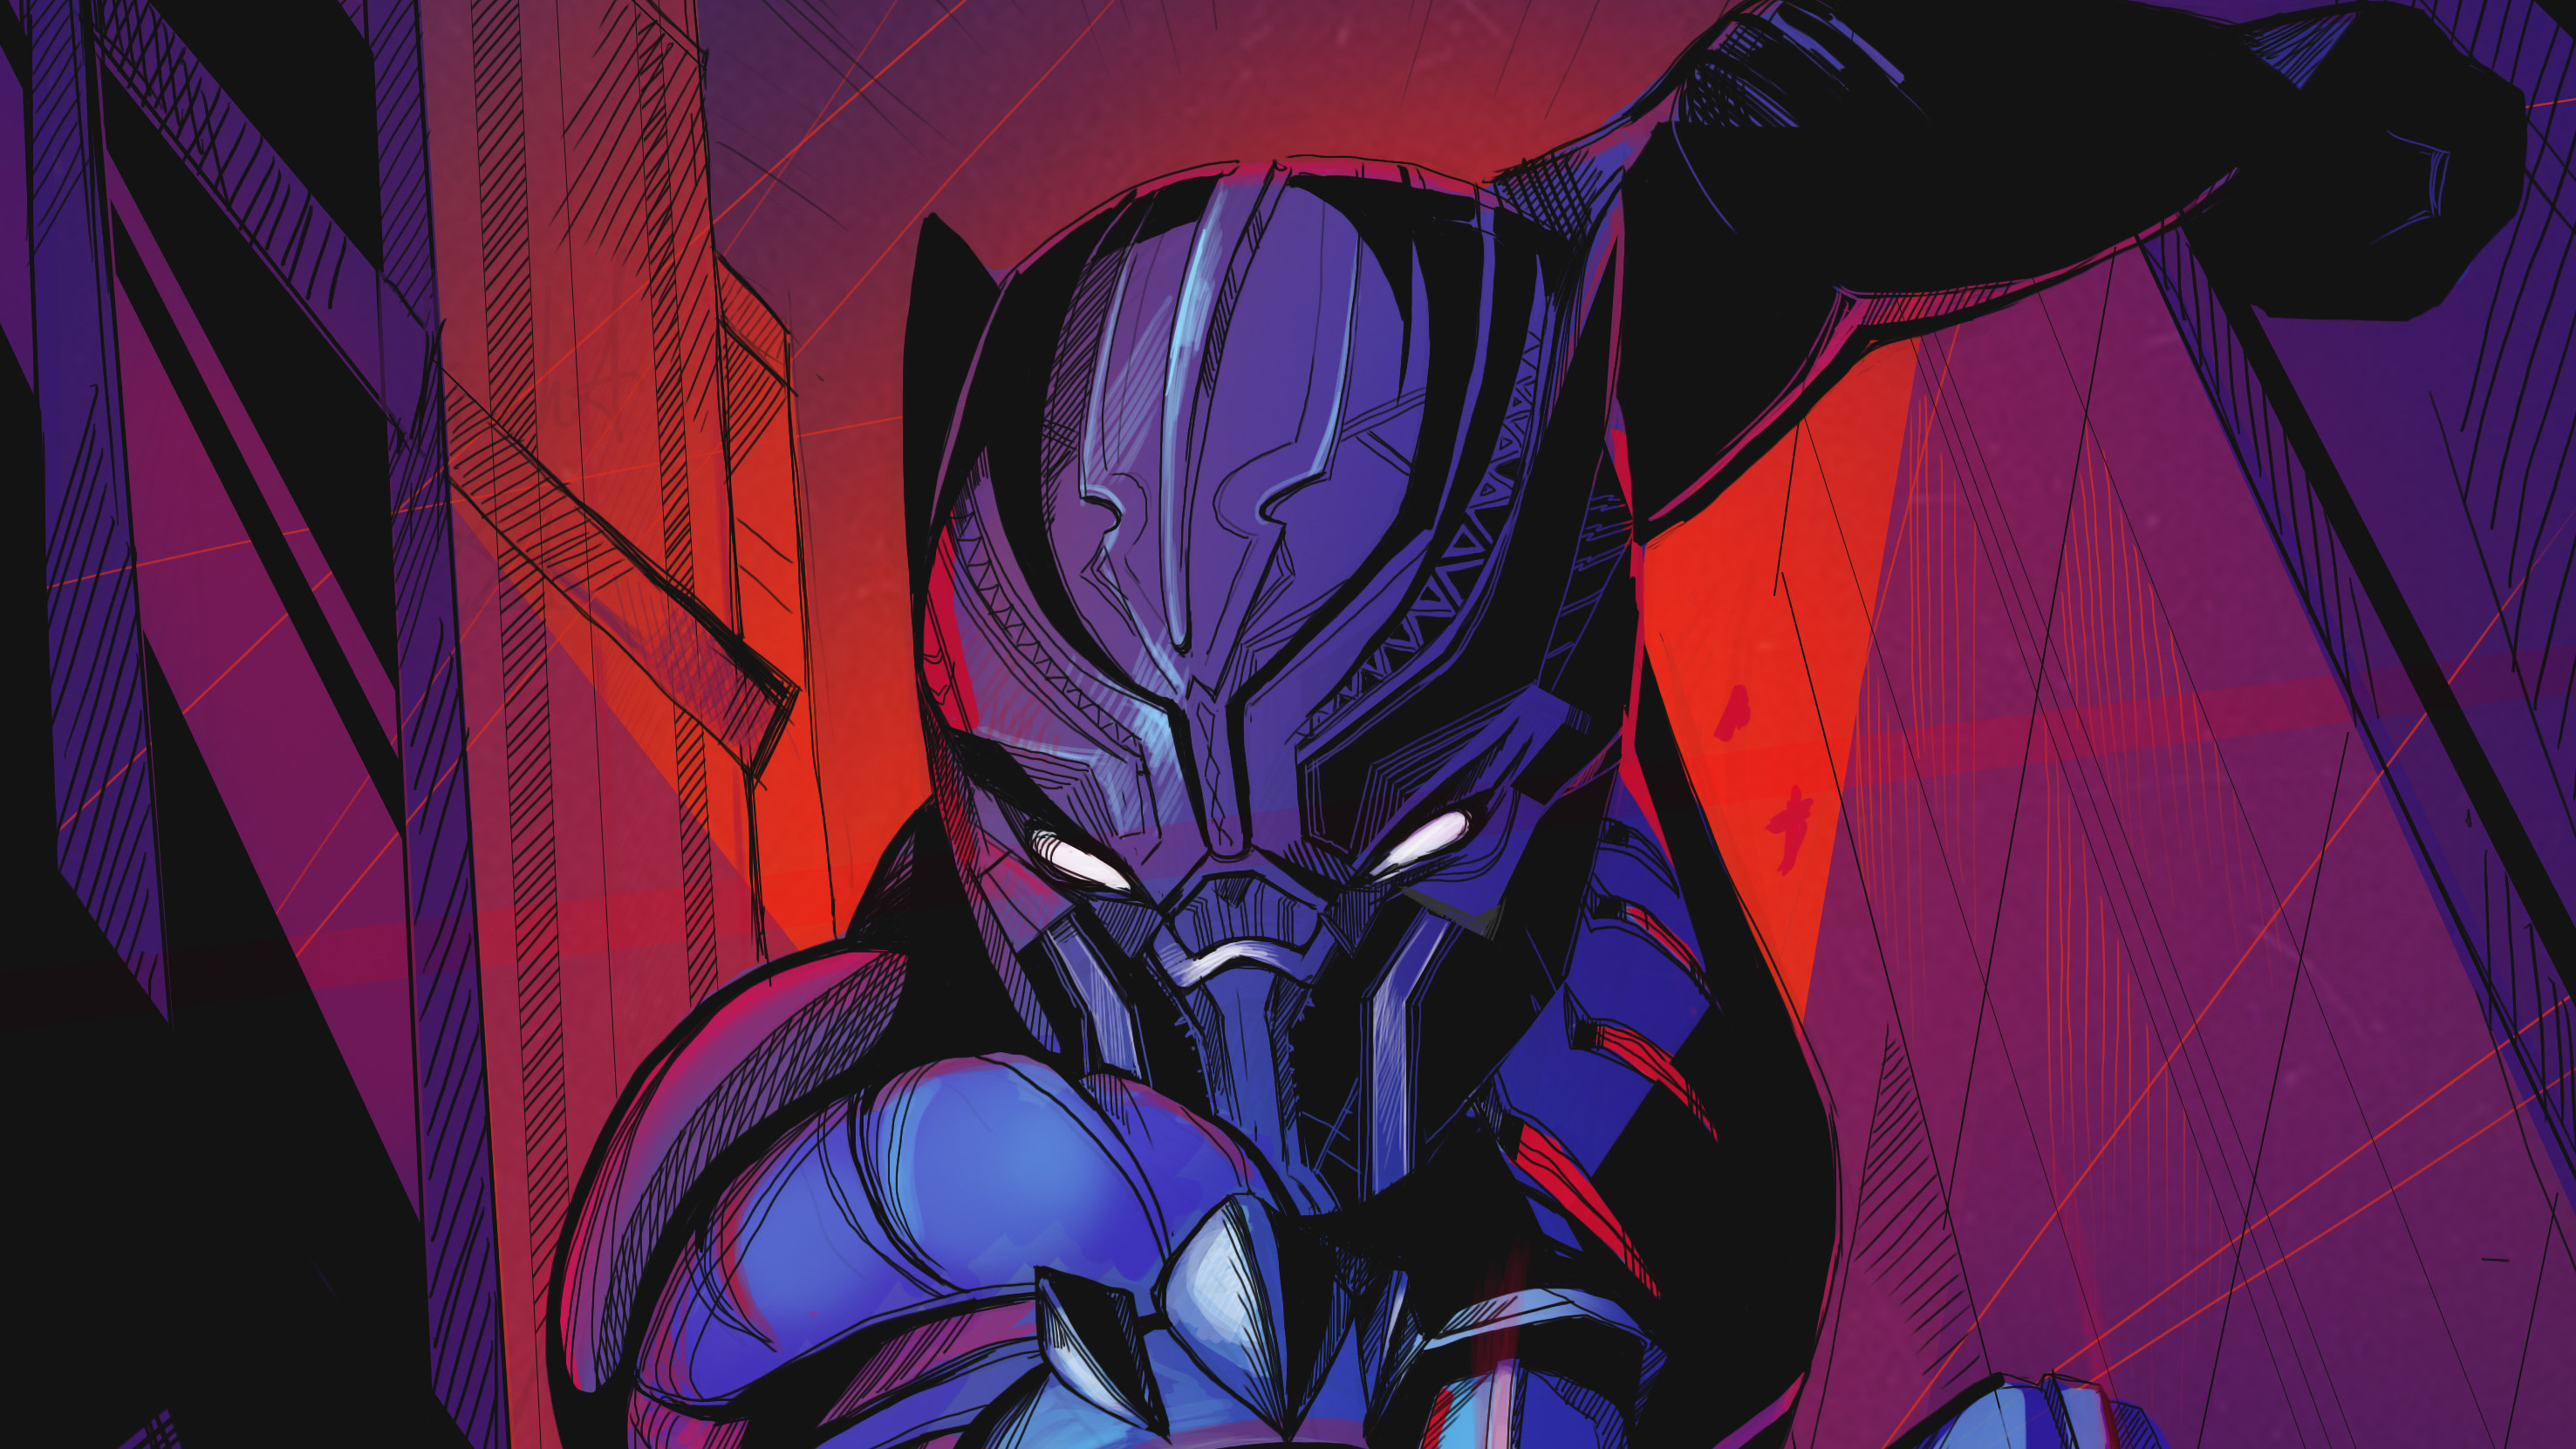 Black Panther Artwork2305212376 - Black Panther Artwork - Panther, Lance, Black, Artwork